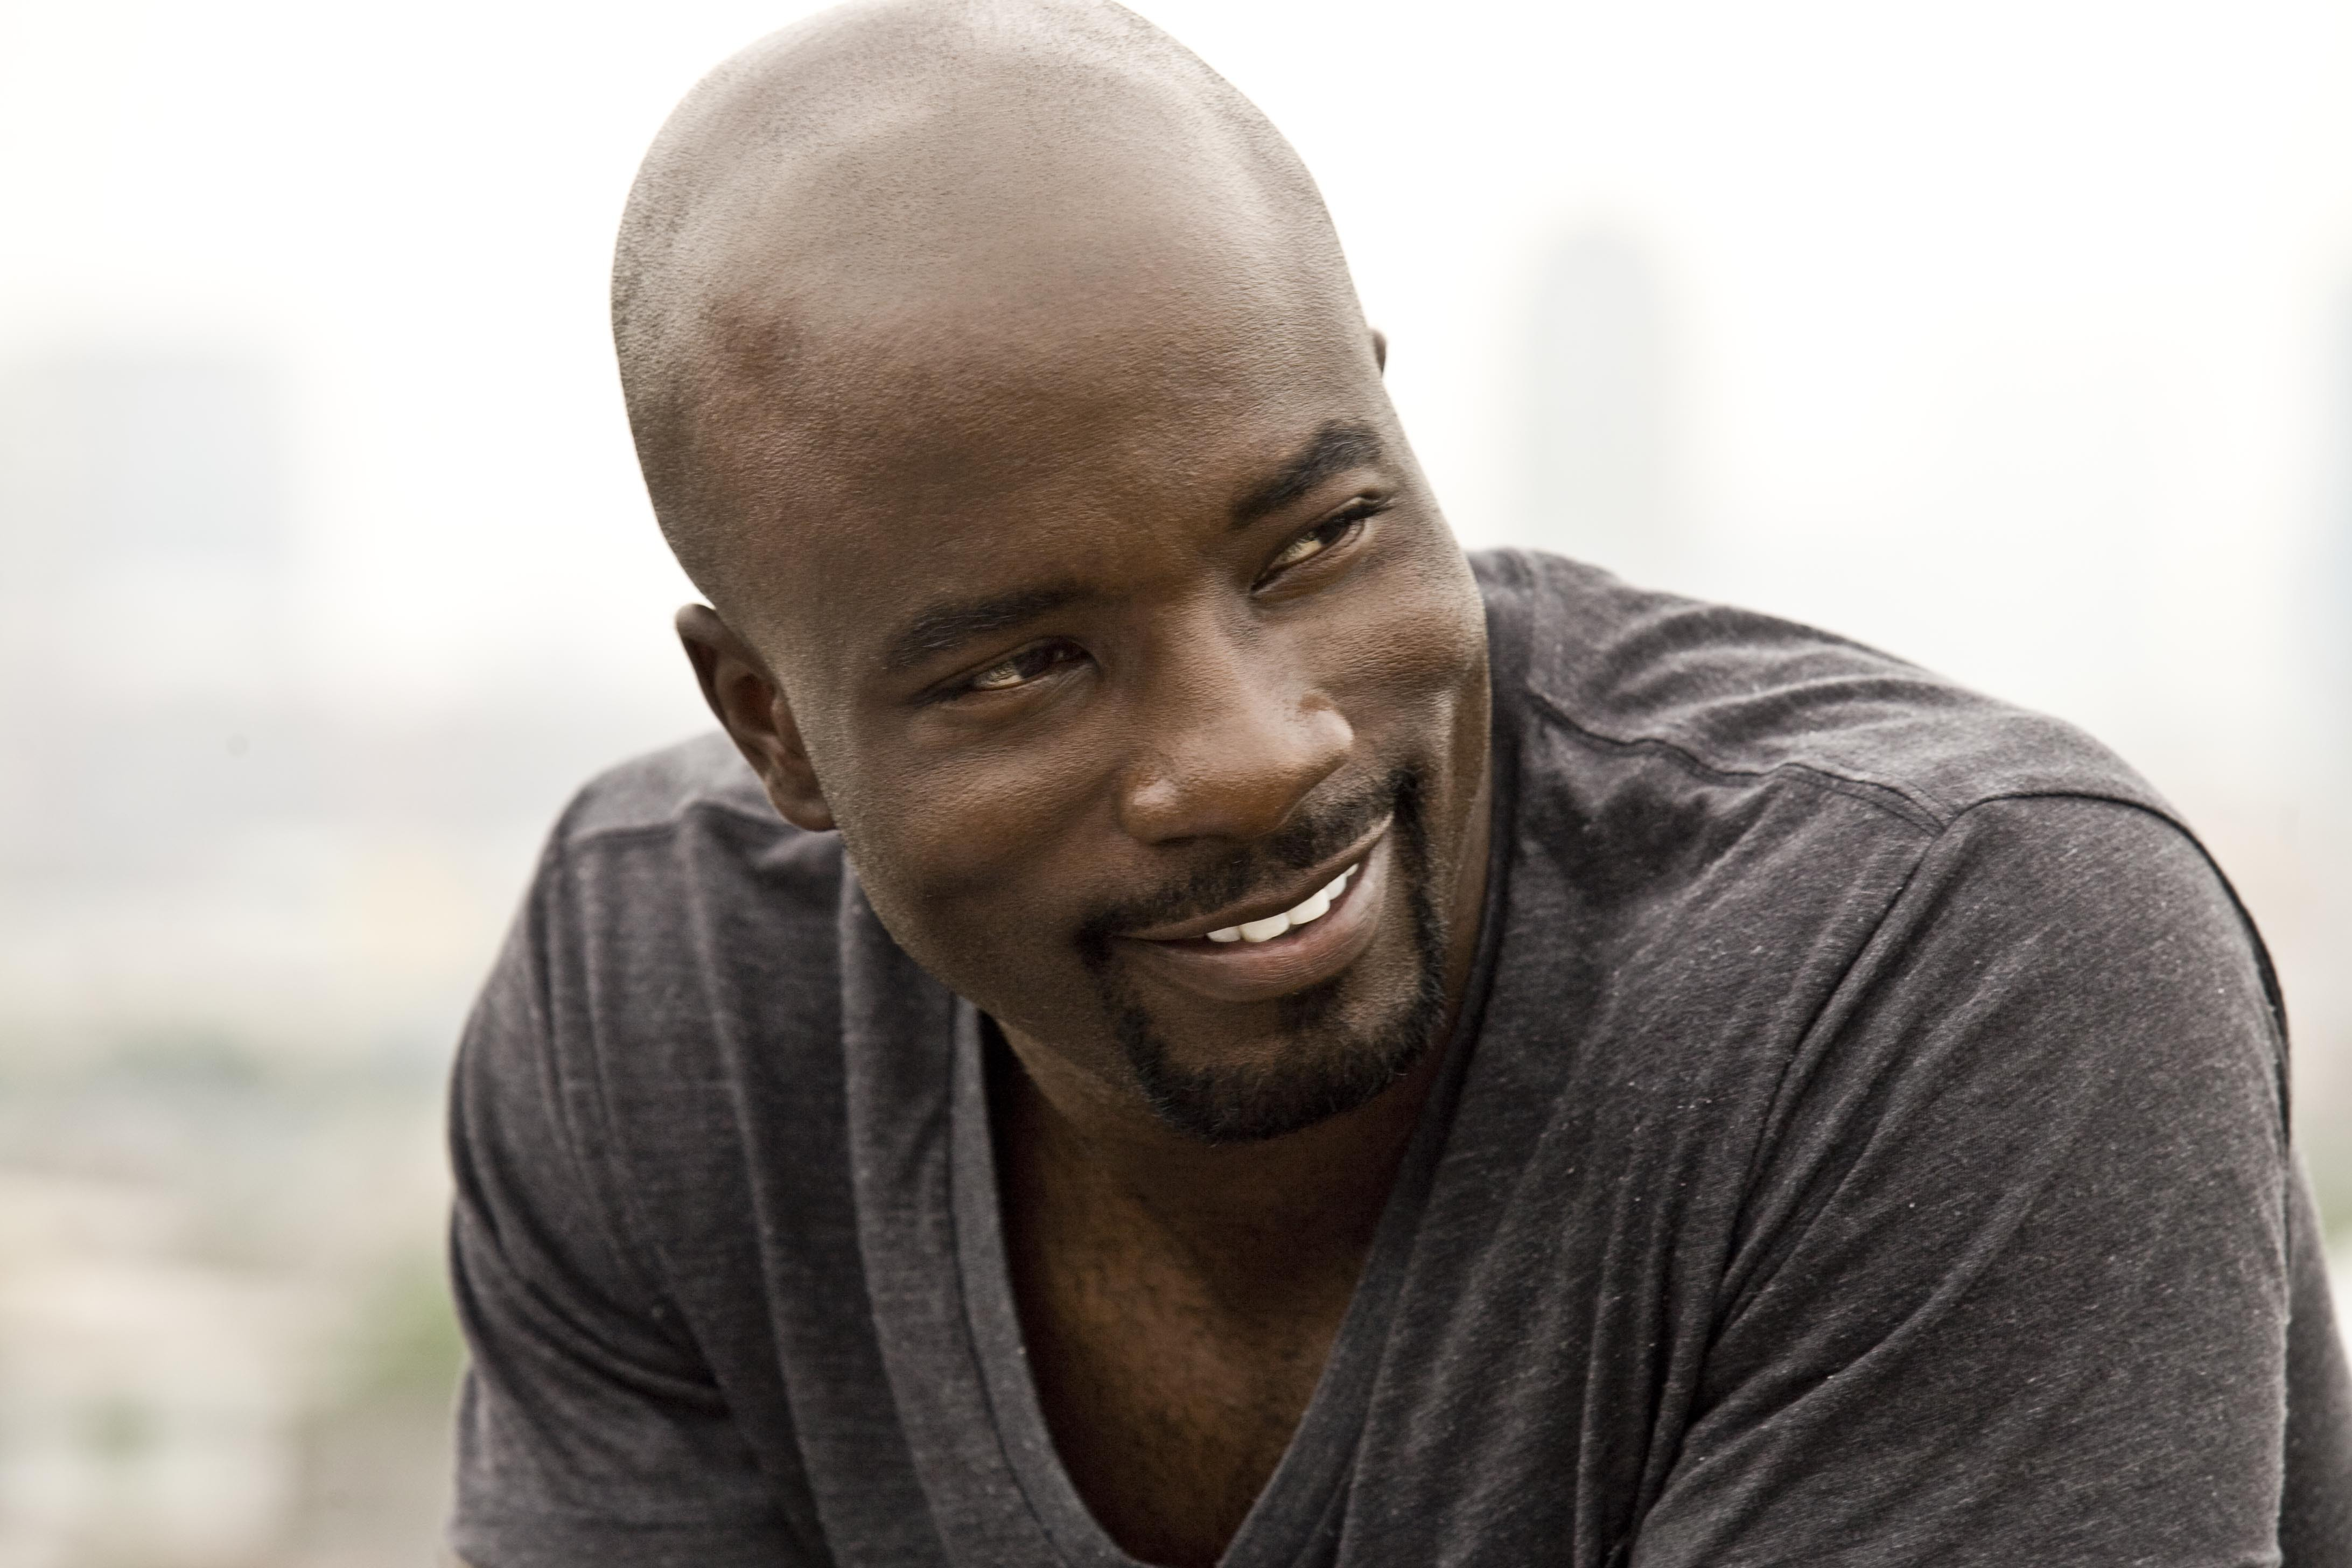 4368x2912 - Mike Colter Wallpapers 4